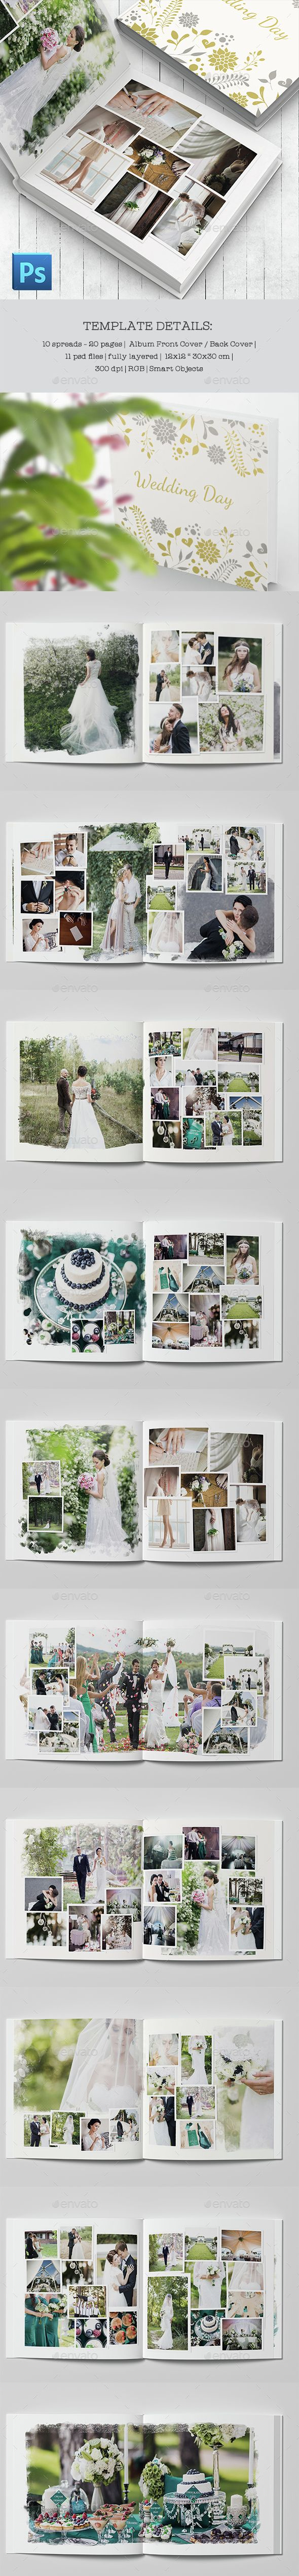 #Wedding Photobook Template - Photo Albums Print Templates Download here: https://graphicriver.net/item/wedding-photobook-template/14911105?ref=classicdesignp